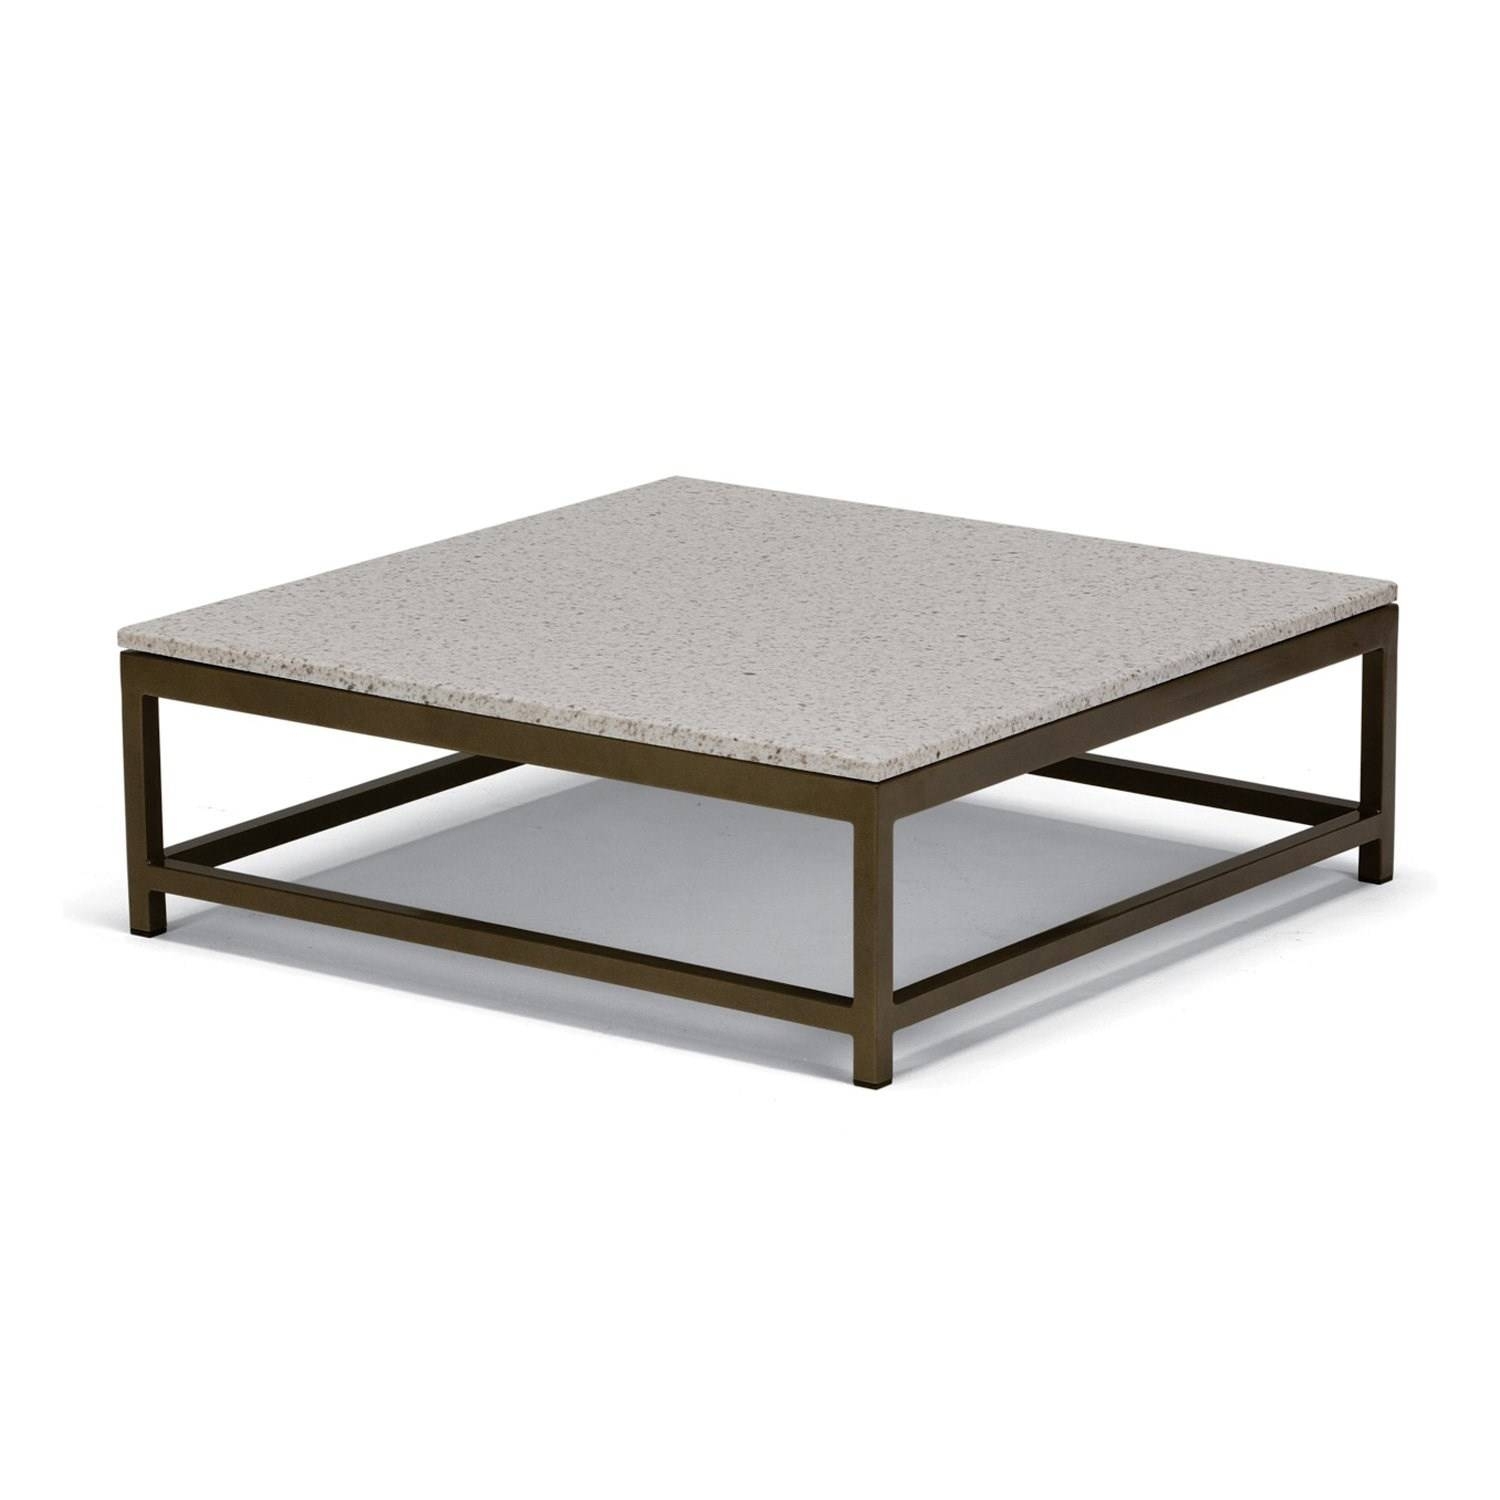 Marvelous Stone Top Coffee Table Designs – Round Marble Coffee throughout Round Slate Top Coffee Tables (Image 15 of 30)